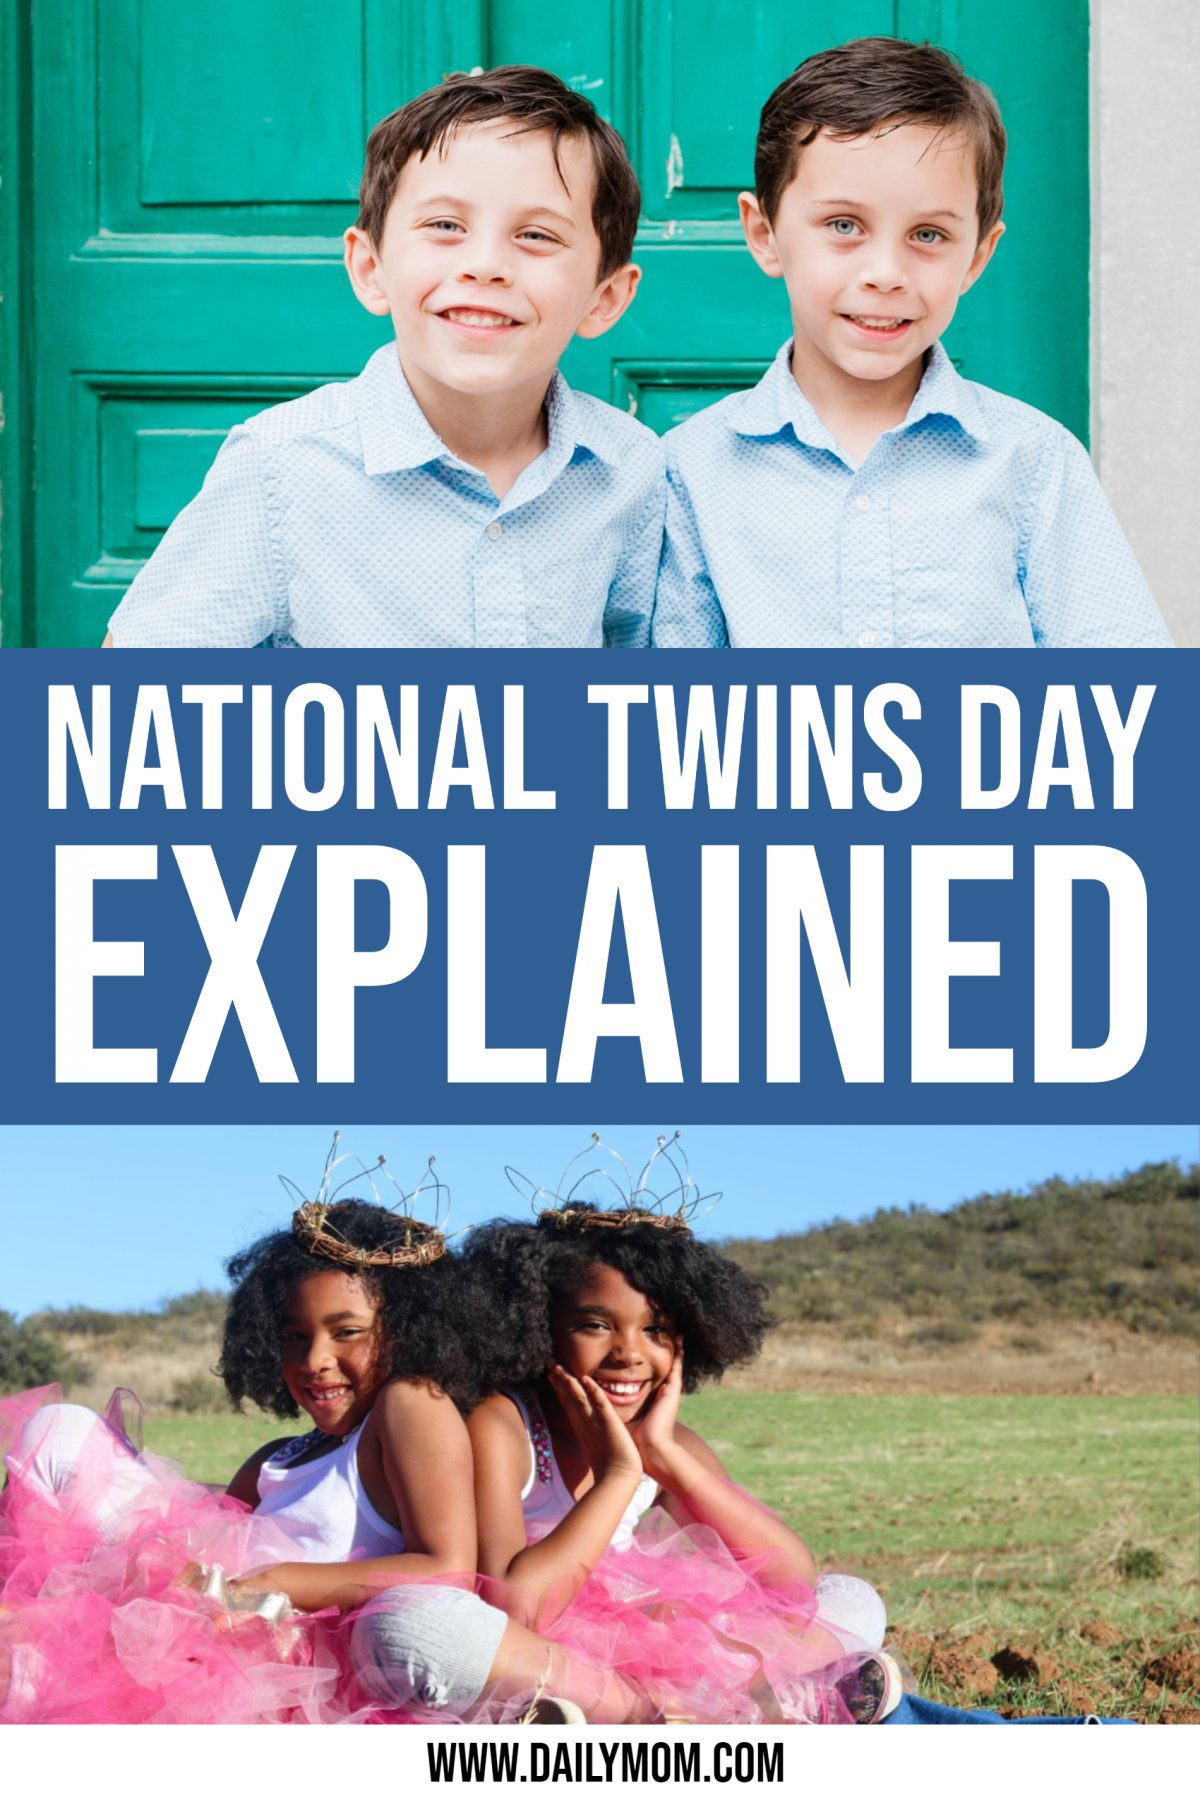 travel advisor National Twins Day Explained